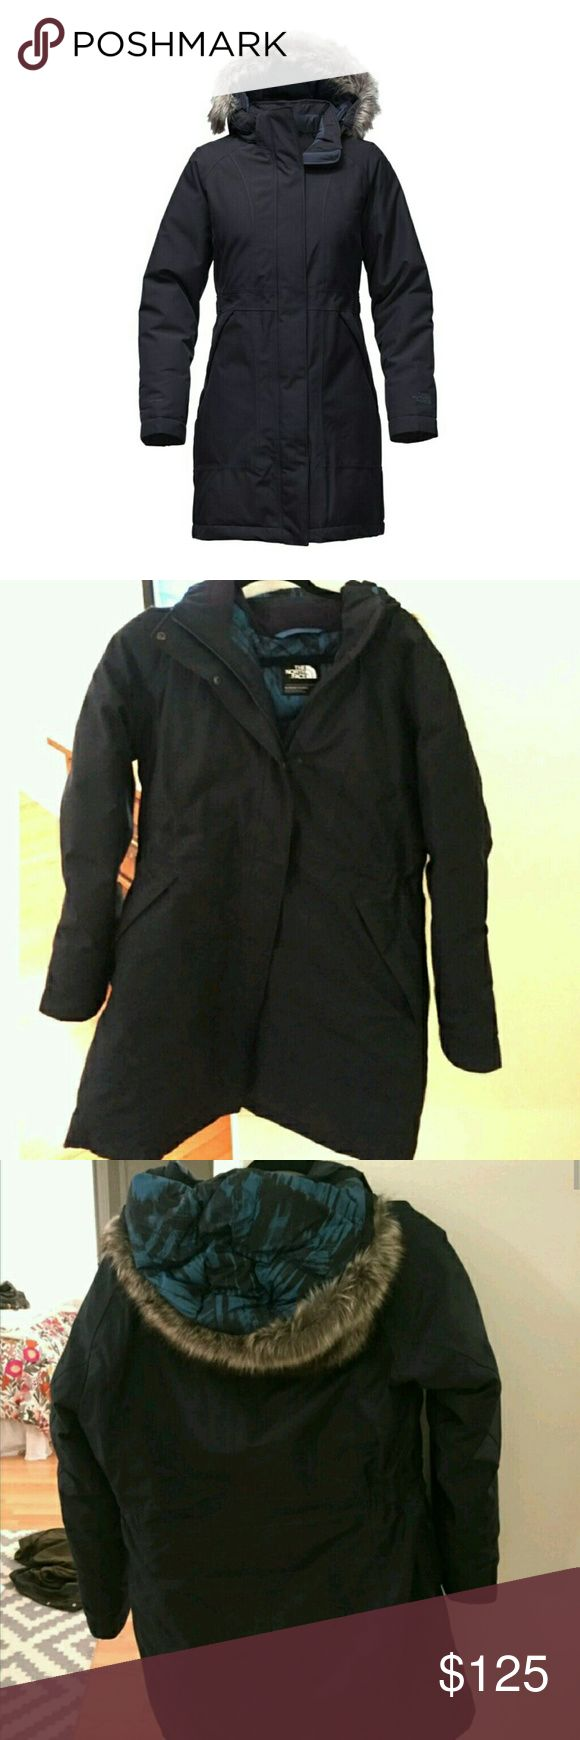 Selling this North Face Arctic Parka Down Coat XL Urban Navy on Poshmark! My username is: thehippodrome2. #shopmycloset #poshmark #fashion #shopping #style #forsale #North Face #Jackets & Blazers